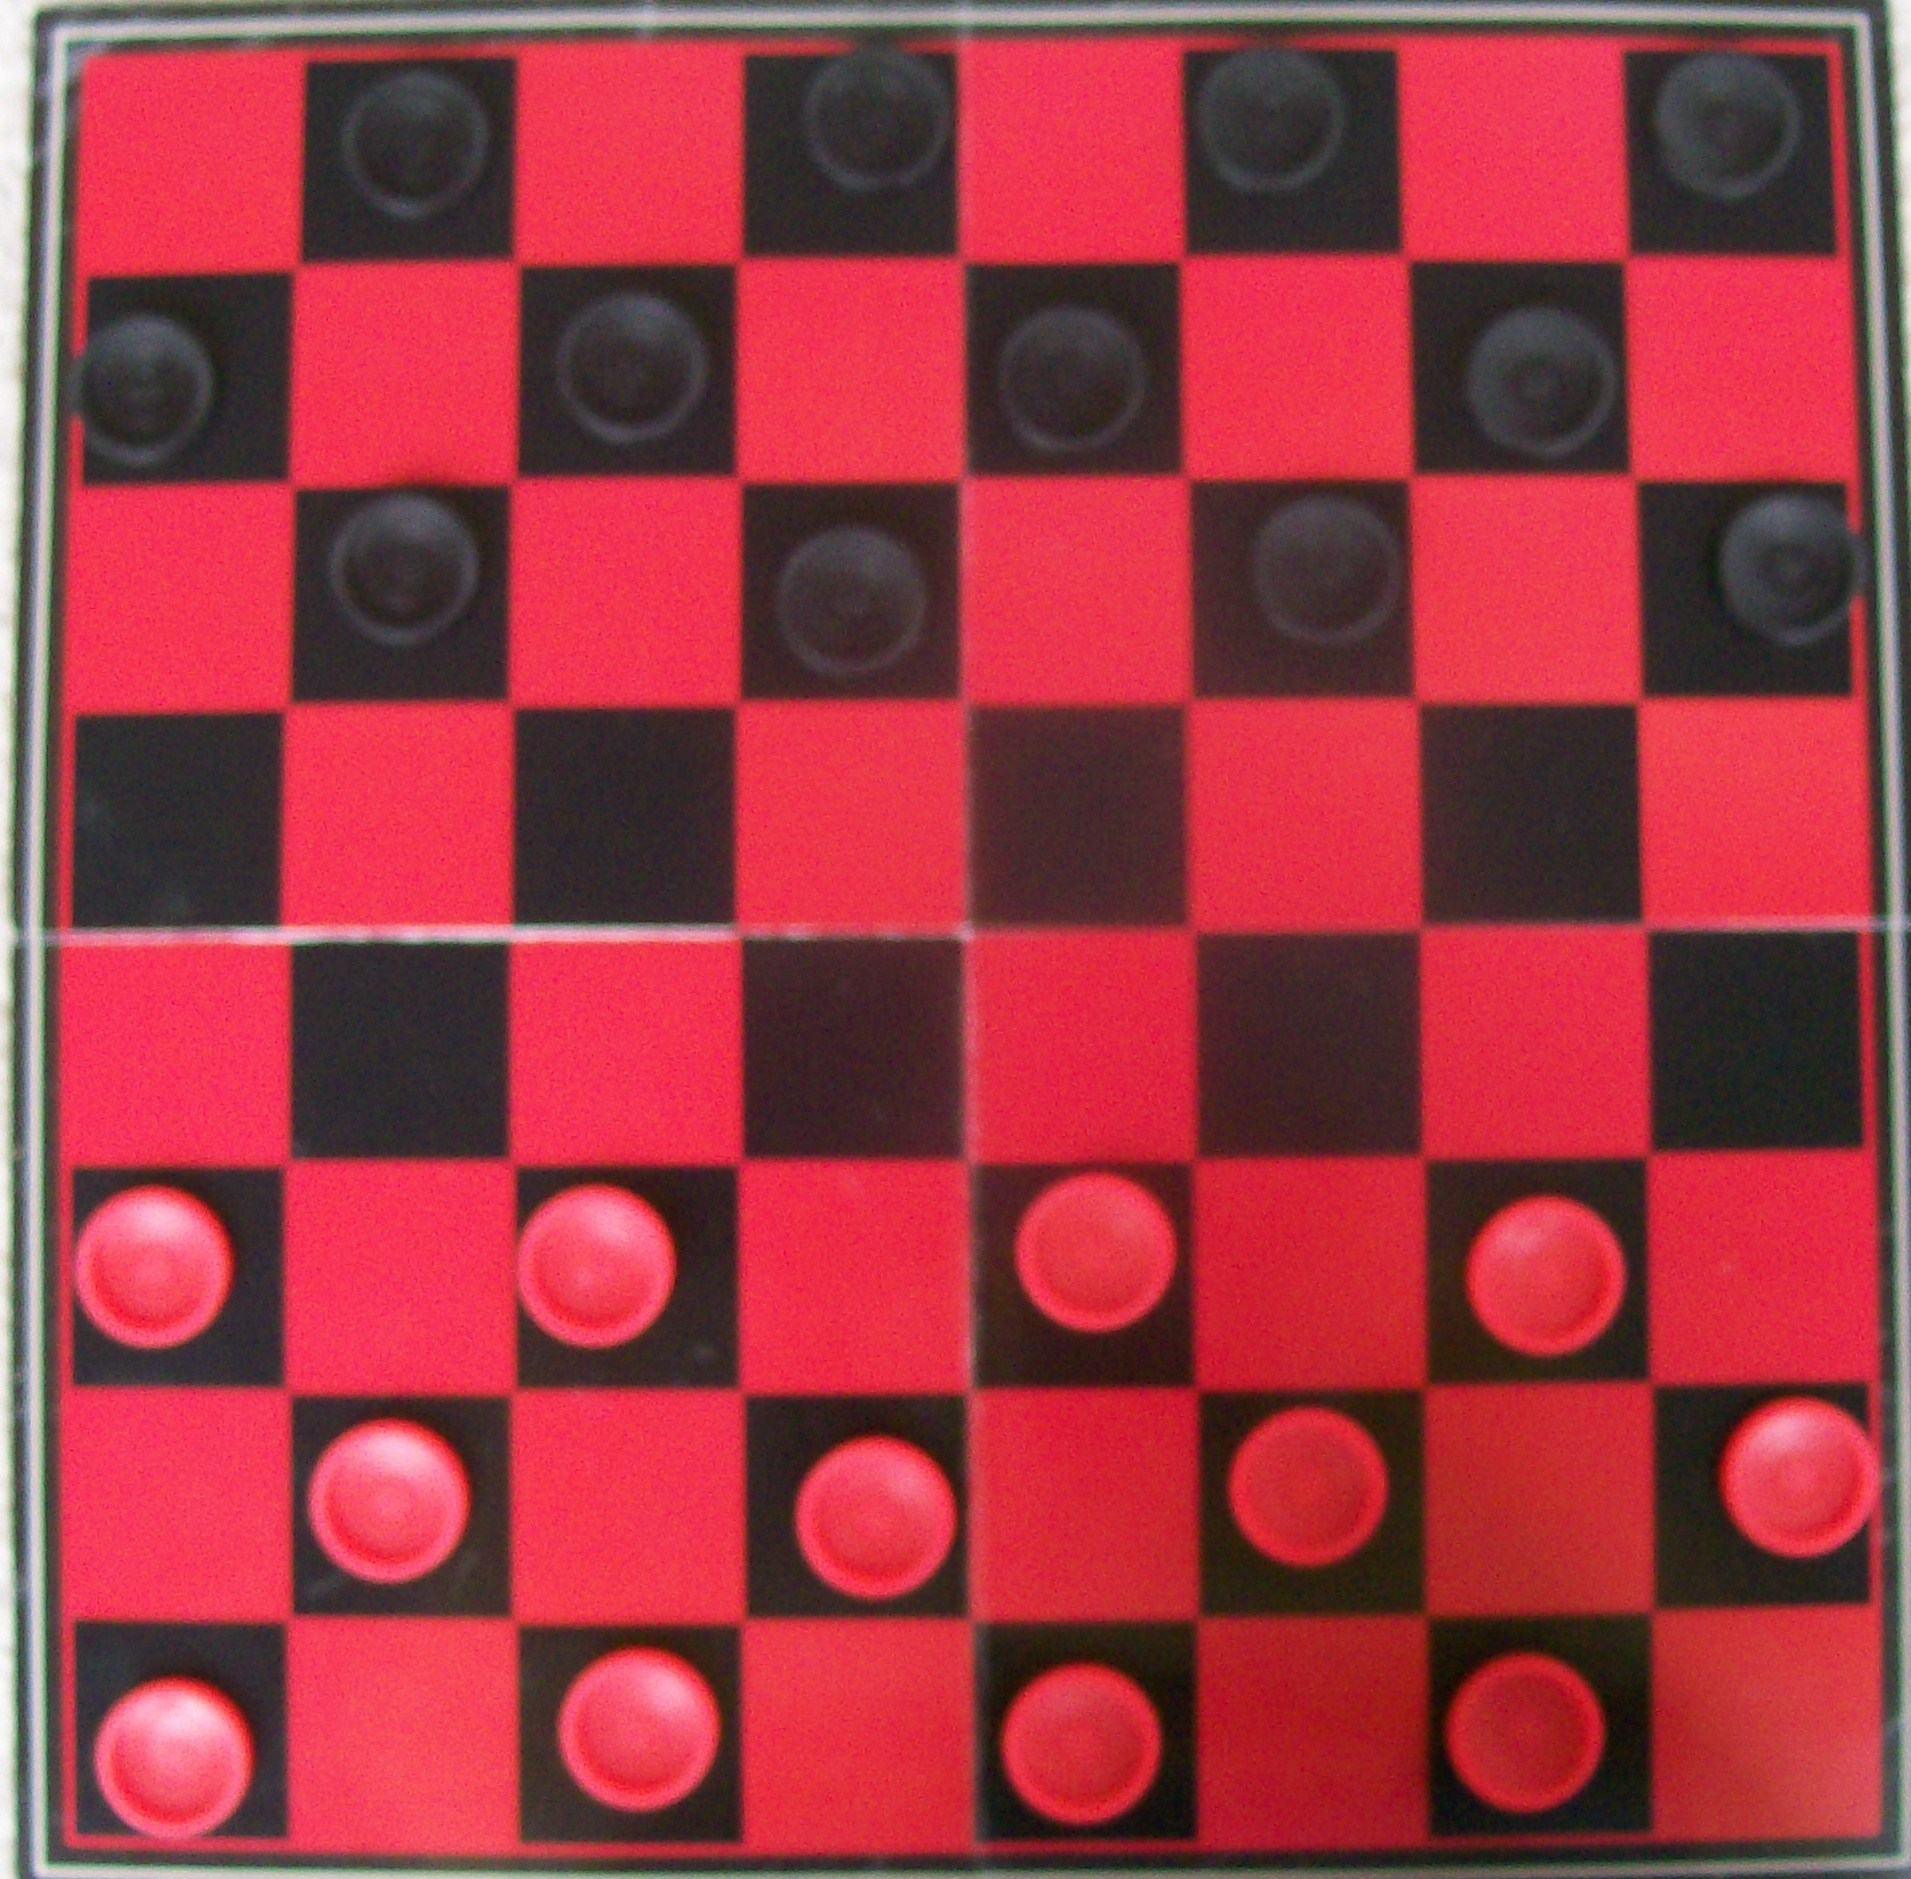 game of checkers